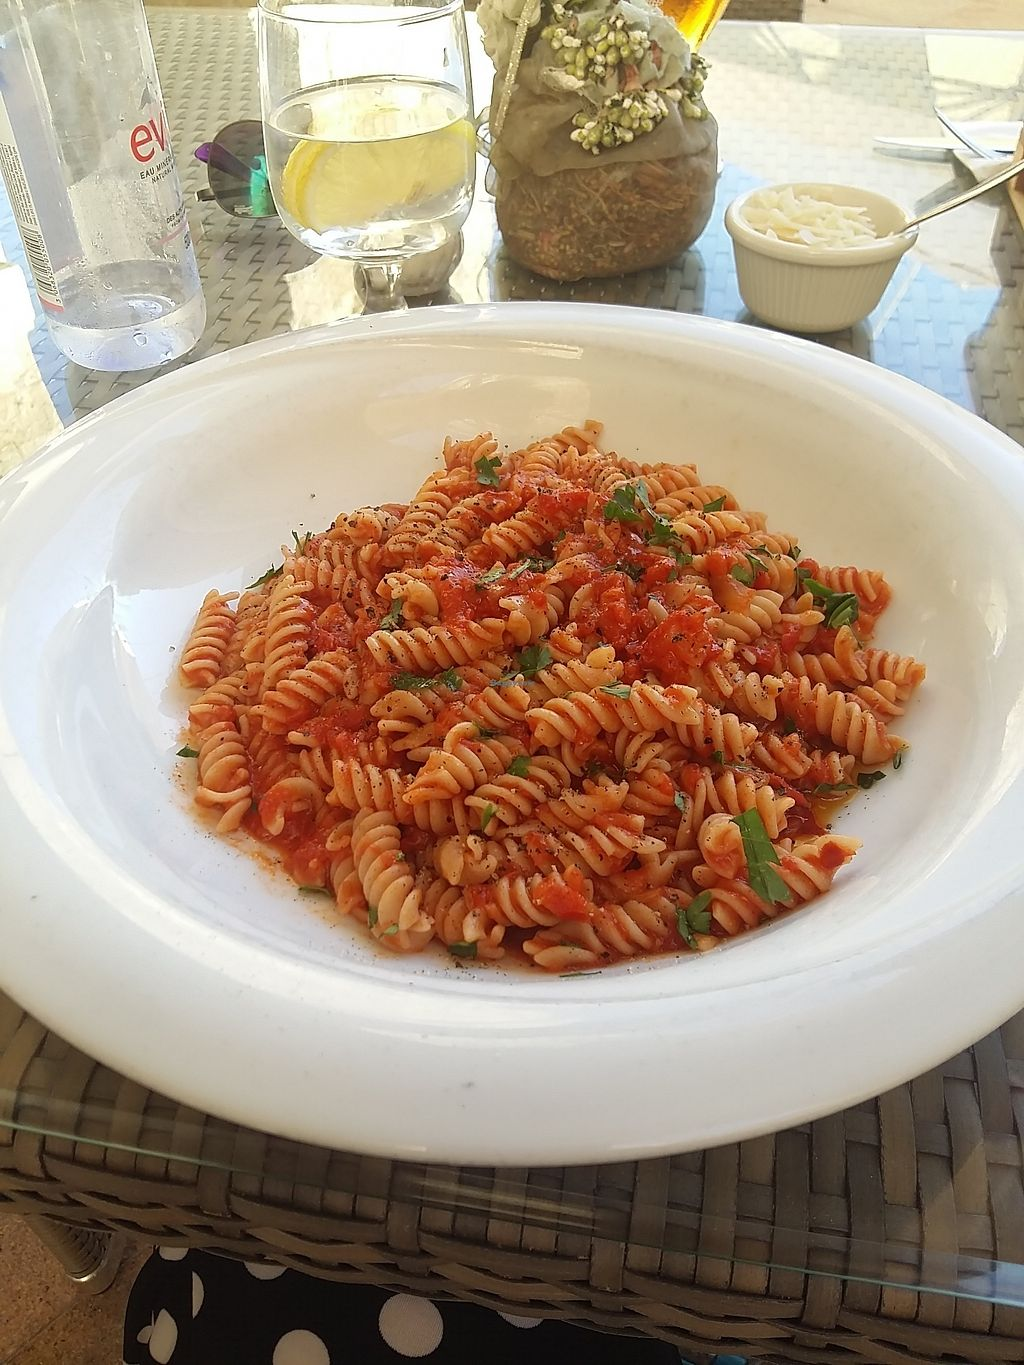 """Photo of Tate Cafe Bar  by <a href=""""/members/profile/ninaframbuesa"""">ninaframbuesa</a> <br/>Fusilli with """"spicy"""" sauce which wasn't actually spicy <br/> August 5, 2017  - <a href='/contact/abuse/image/14246/289223'>Report</a>"""